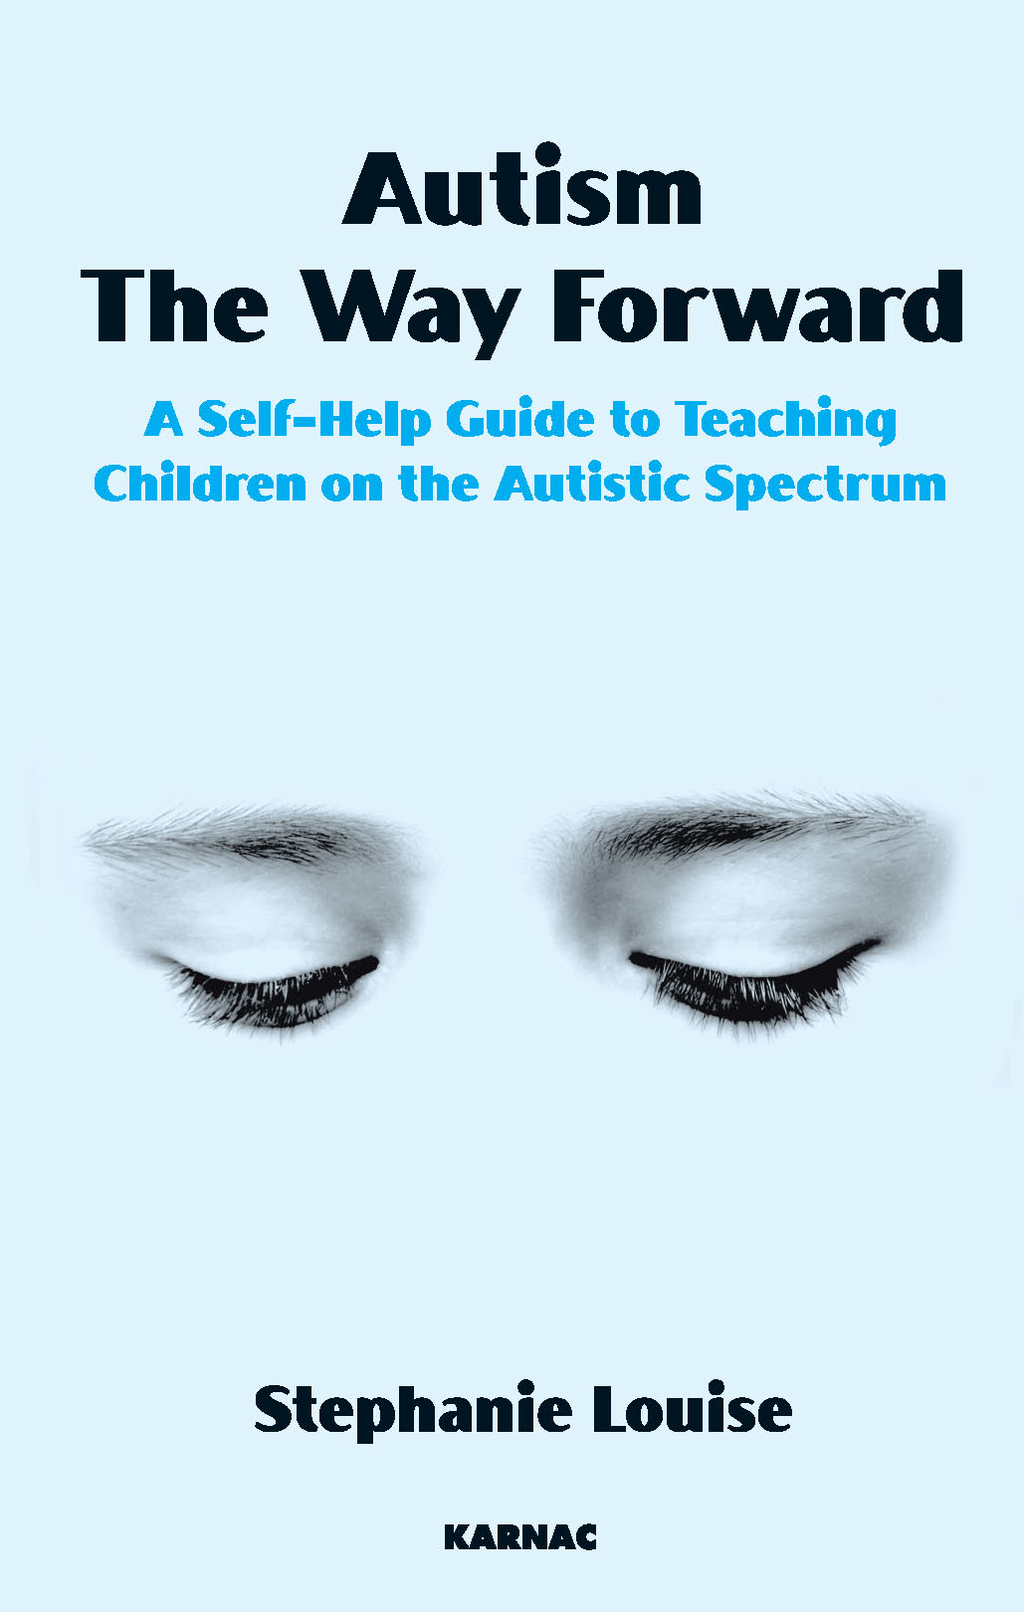 Autism, The Way Forward: A Self-Help Guide to Teaching Children on the Autistic Spectrum By: Stephanie Louise